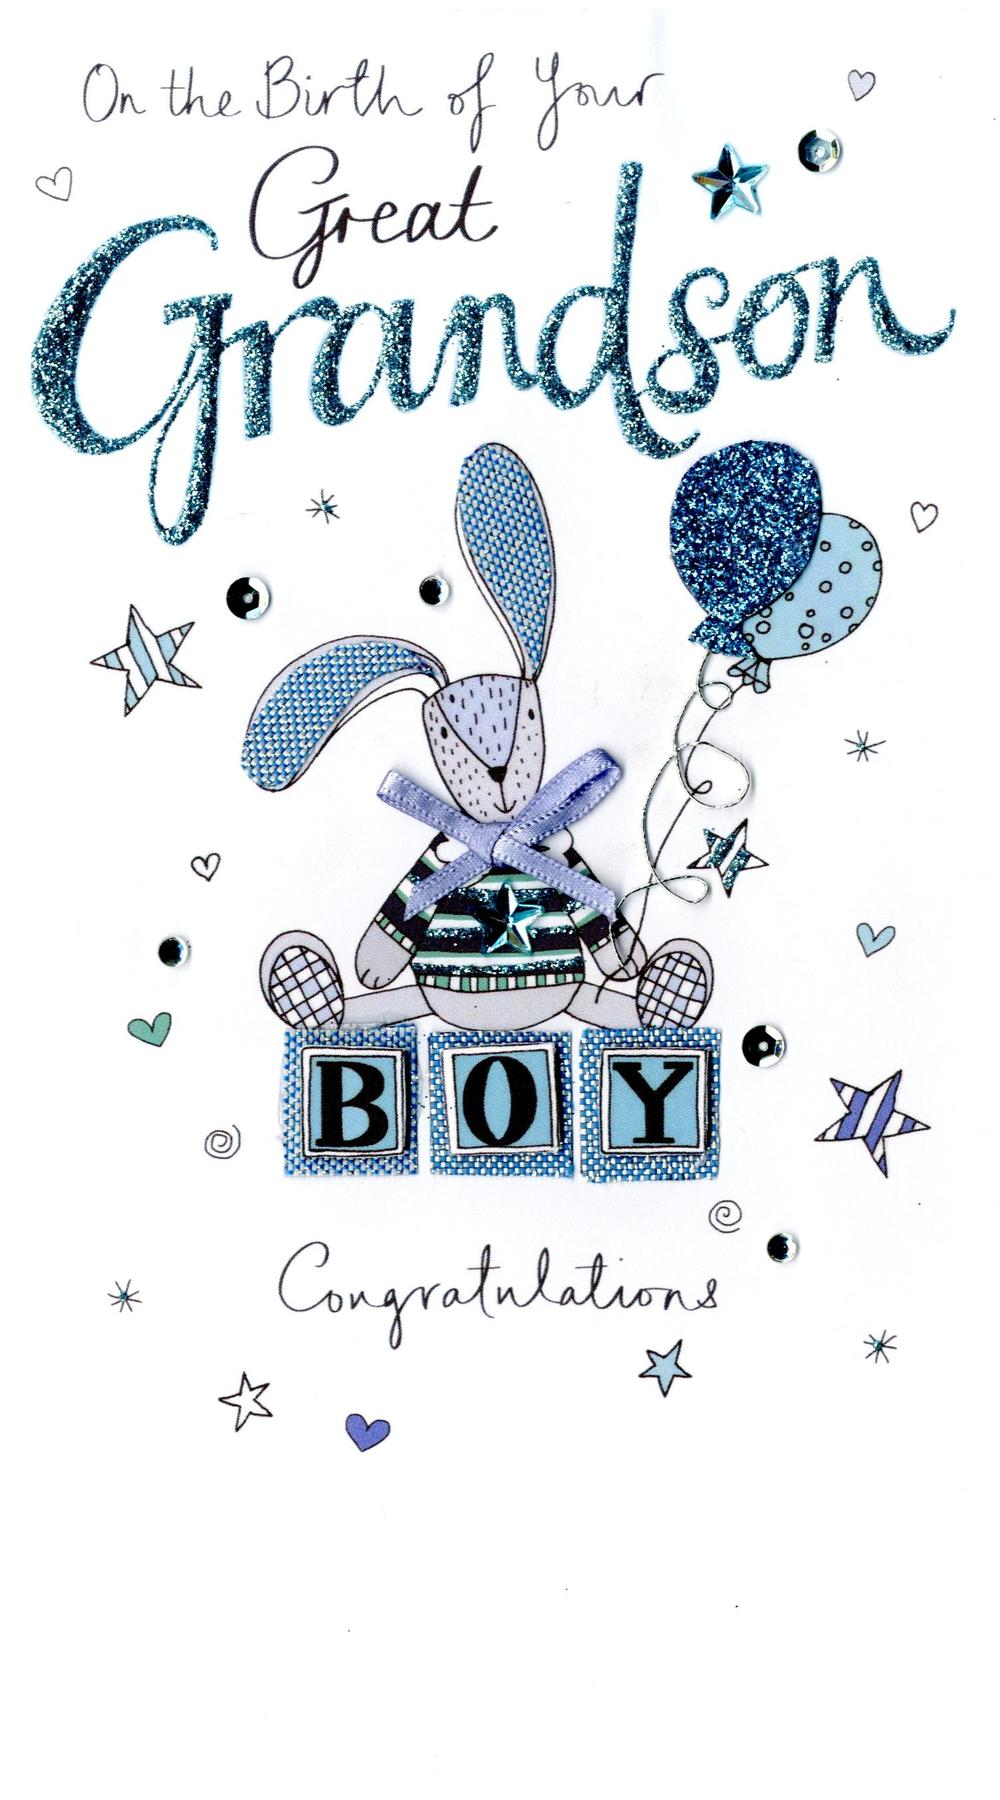 New Baby Great Grandson Luxury Champagne Greeting Card